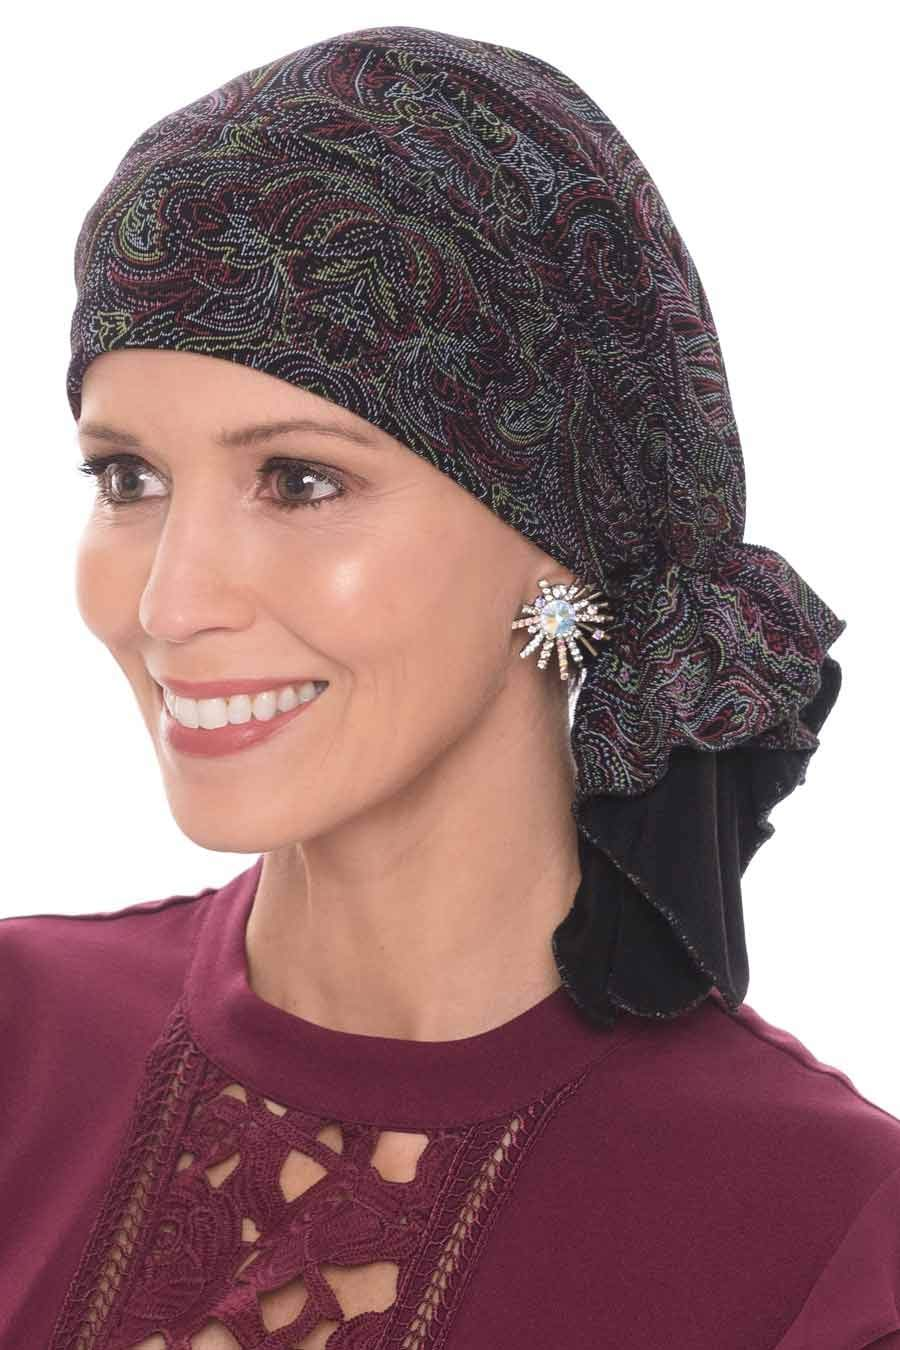 Slip-On Slinky Pre Tied Head Scarf - Scarves for Women with Cancer Chemo Vibrant Paisley